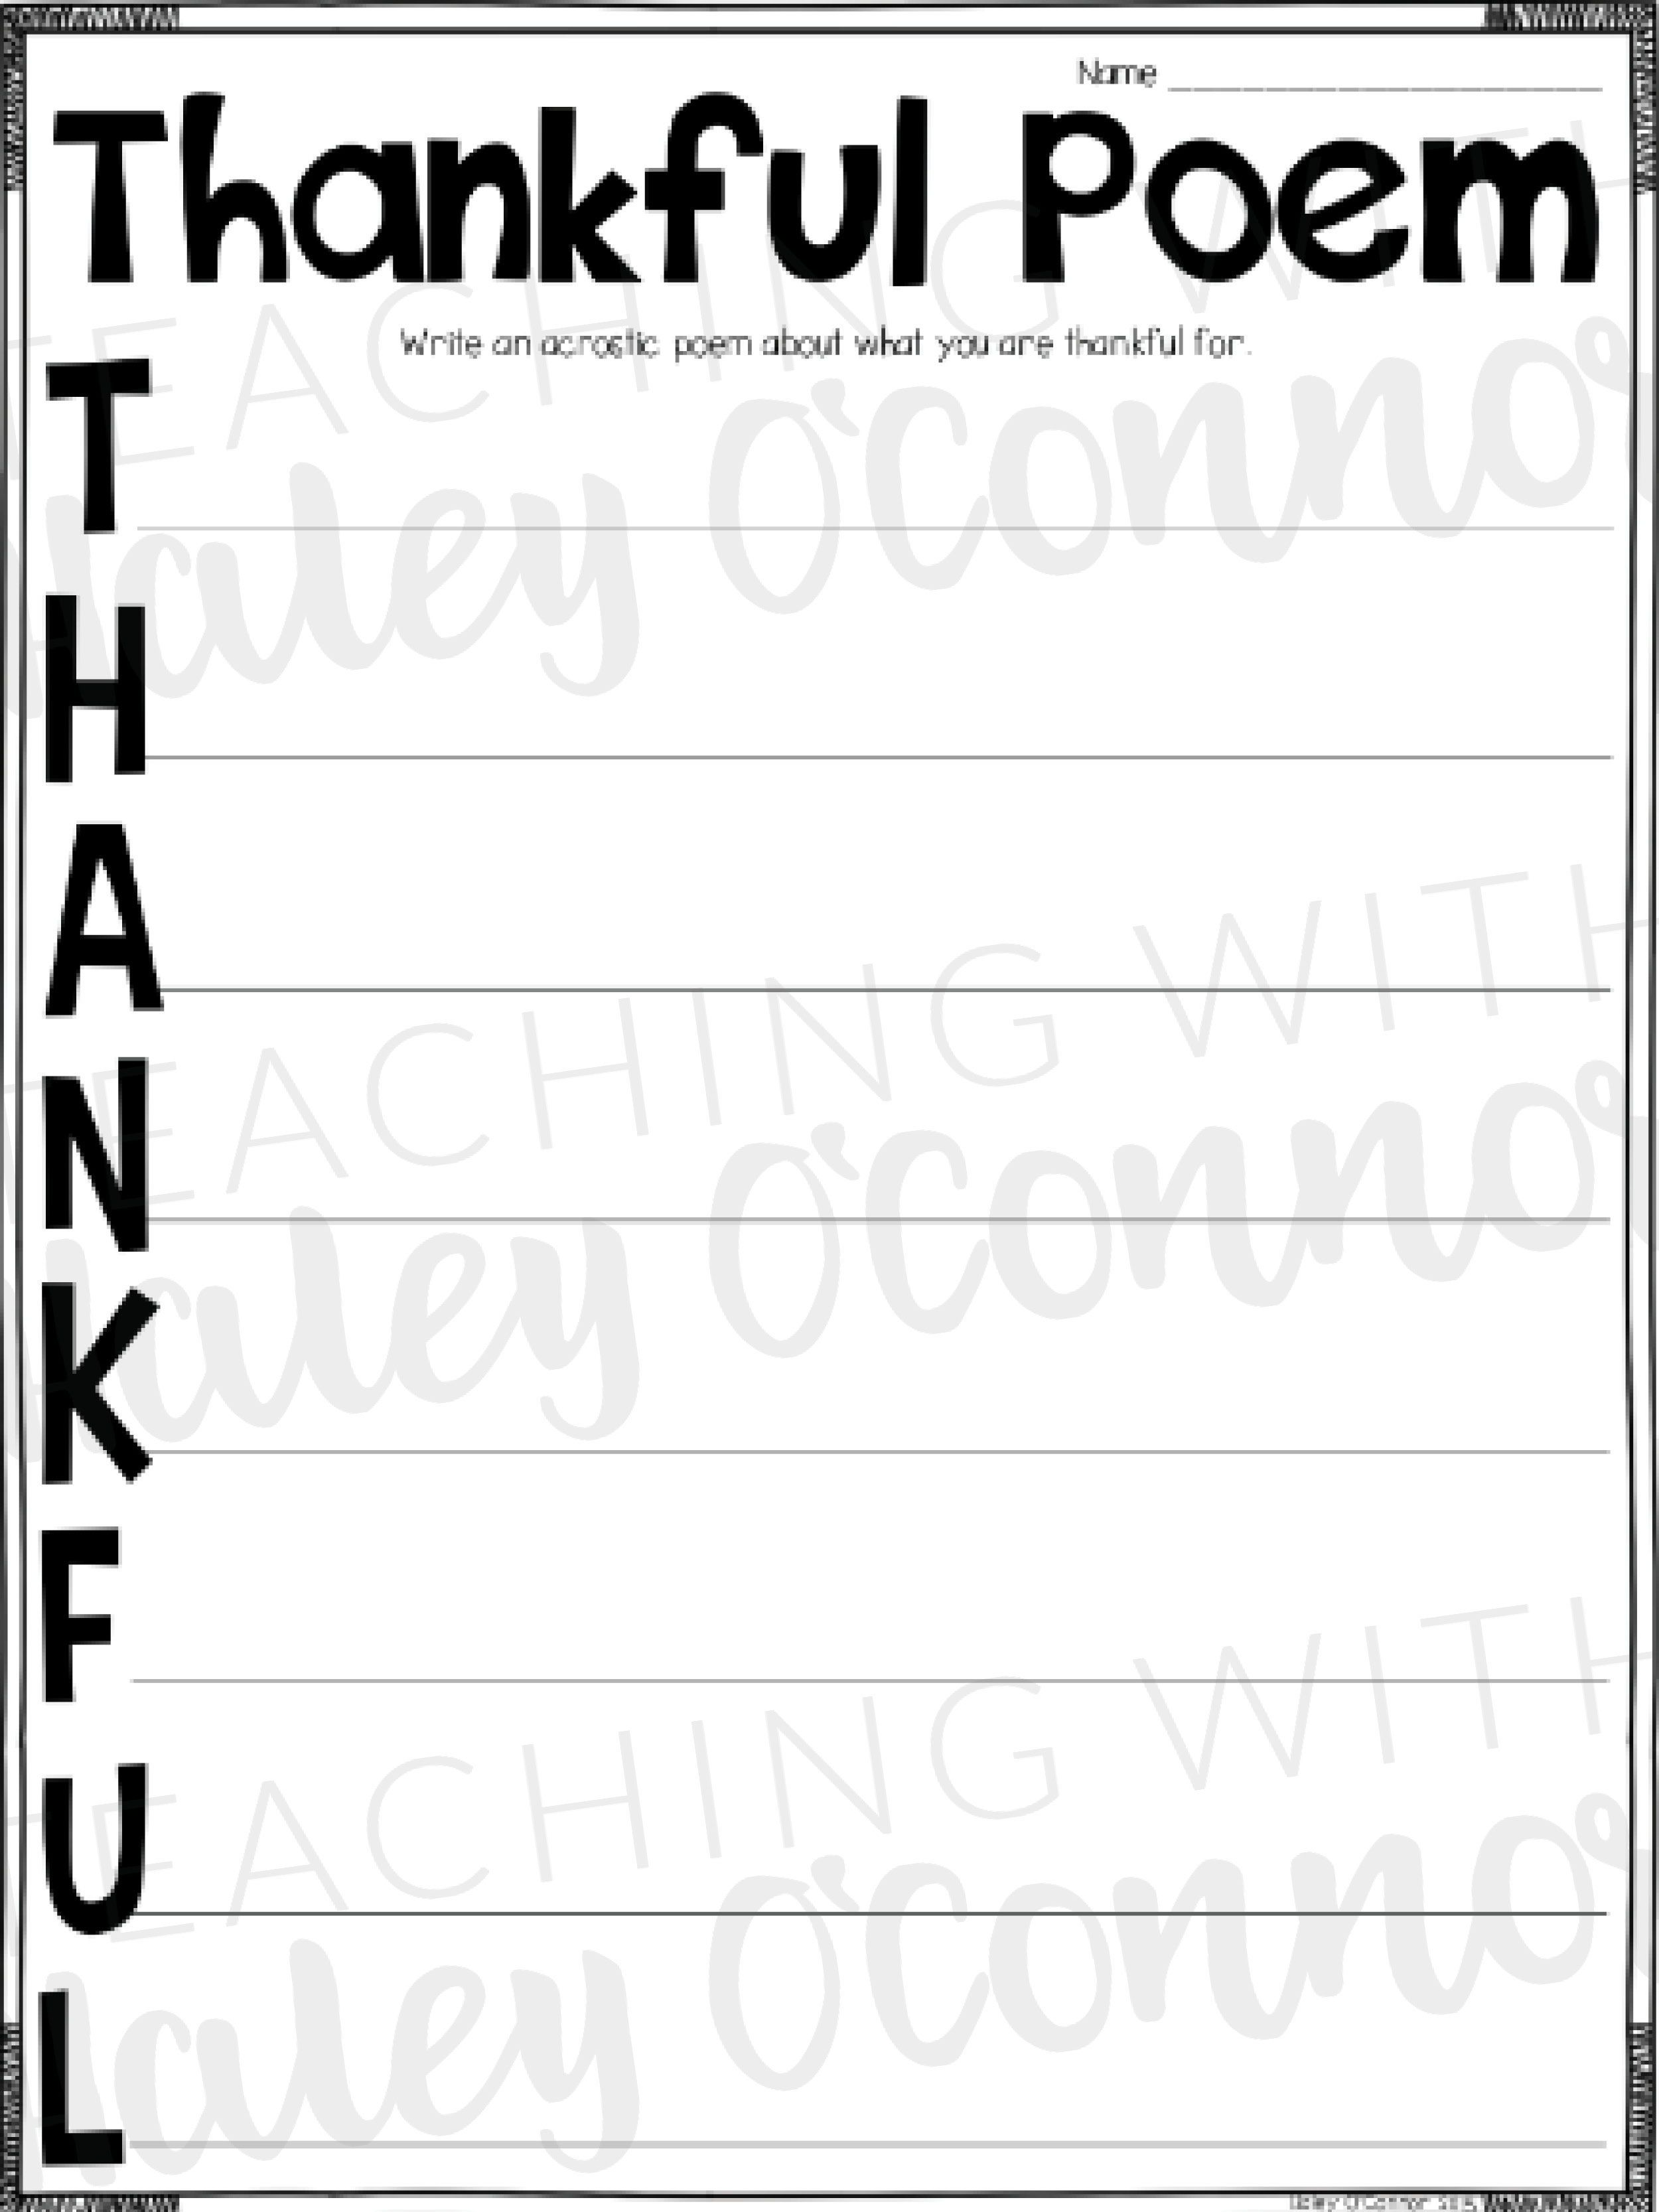 Download These Thanksgiving Writing Activities For 1st Grade And Use Them In Your Cl Thanksgiving Writing Activity Thanksgiving Activities Thanksgiving Lessons [ 3333 x 2500 Pixel ]